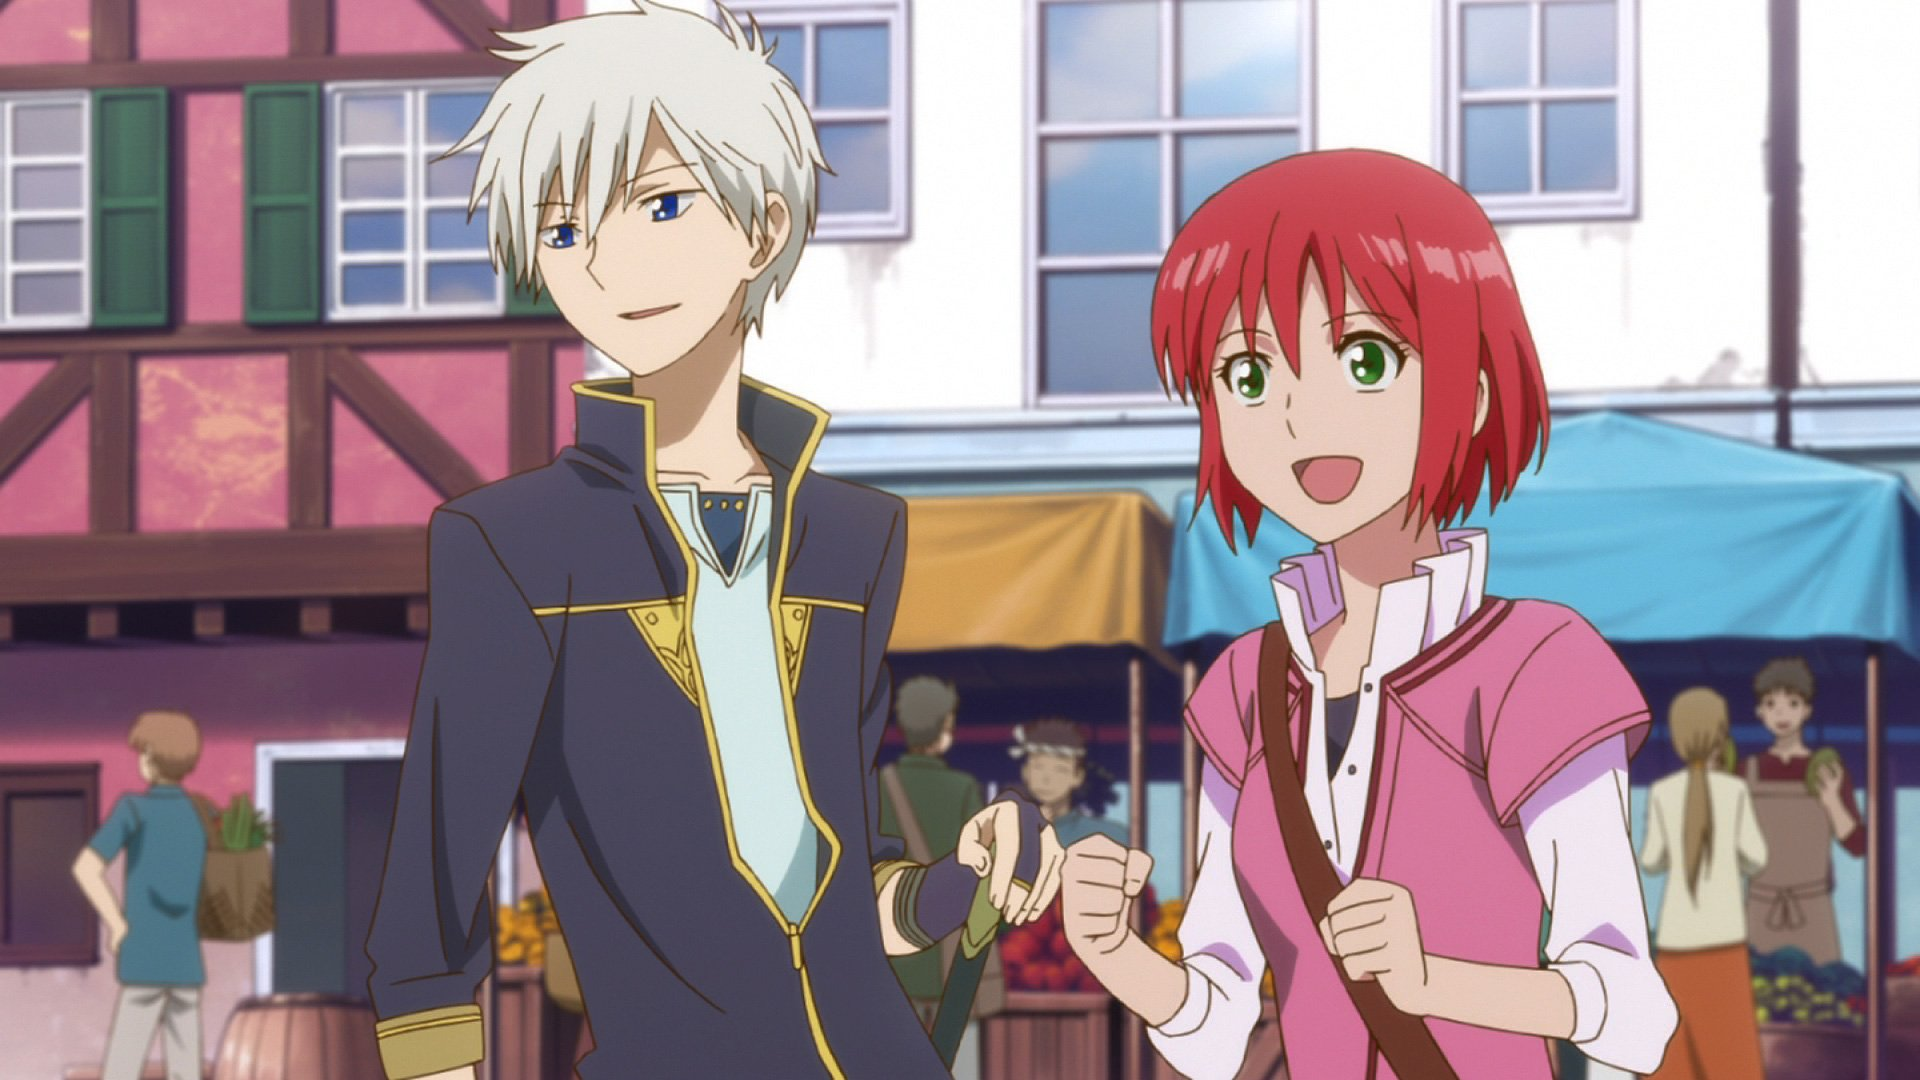 Snow White with the Red Hair Review (Anime) - Rice Digital ...